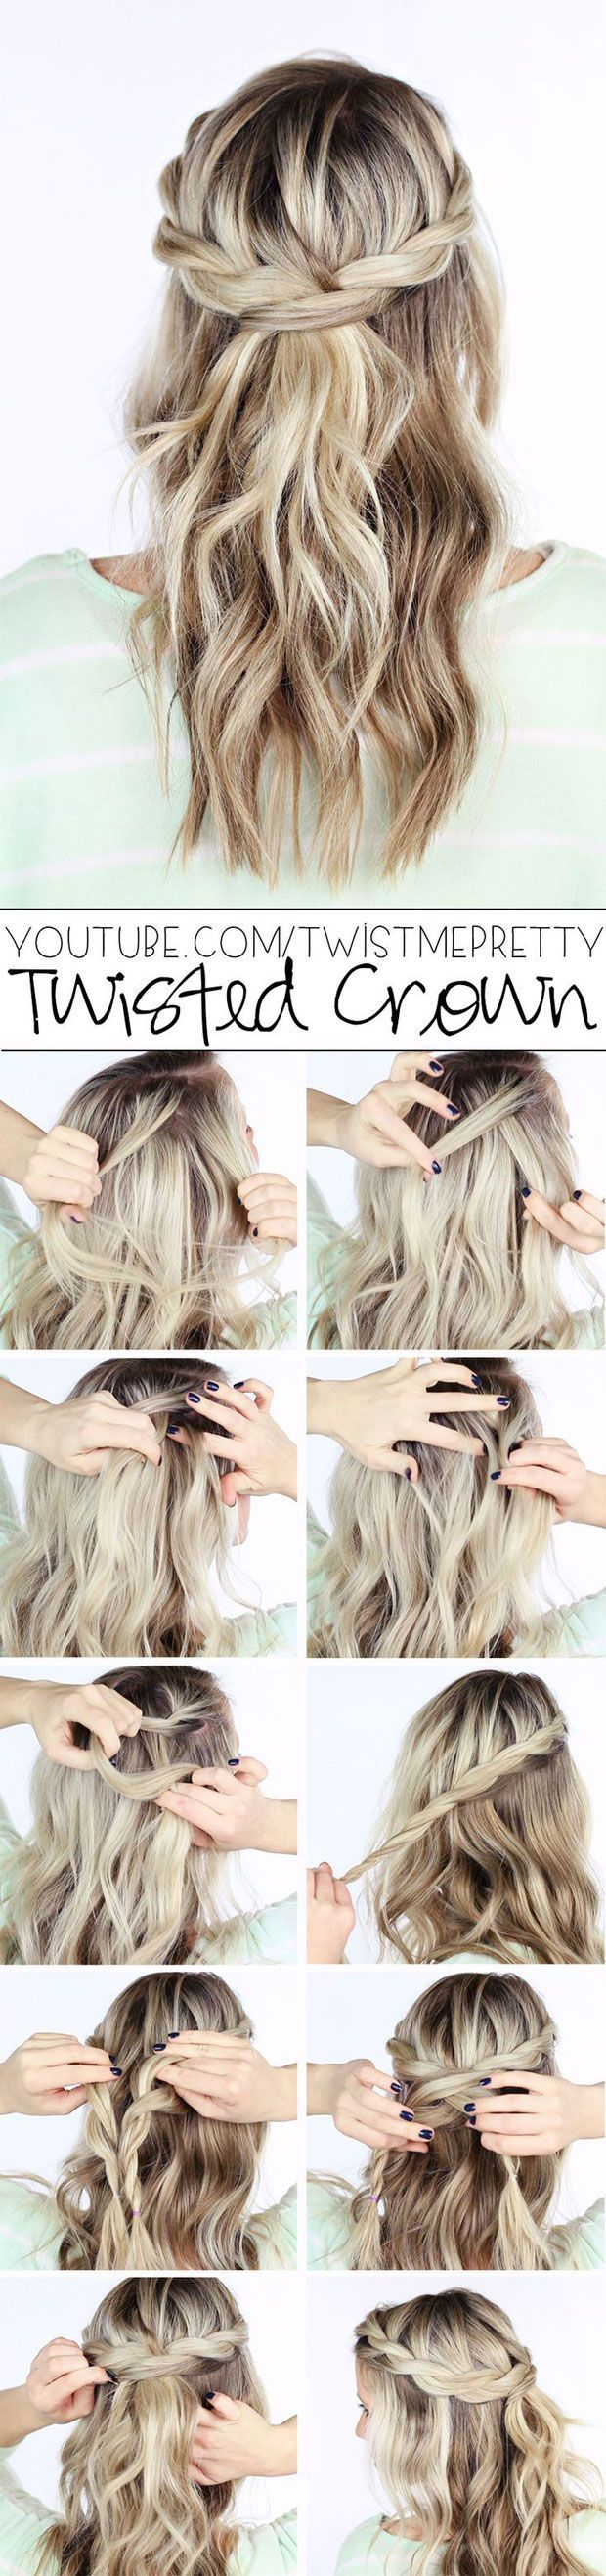 images about hair on pinterest hairstyles tutorials and